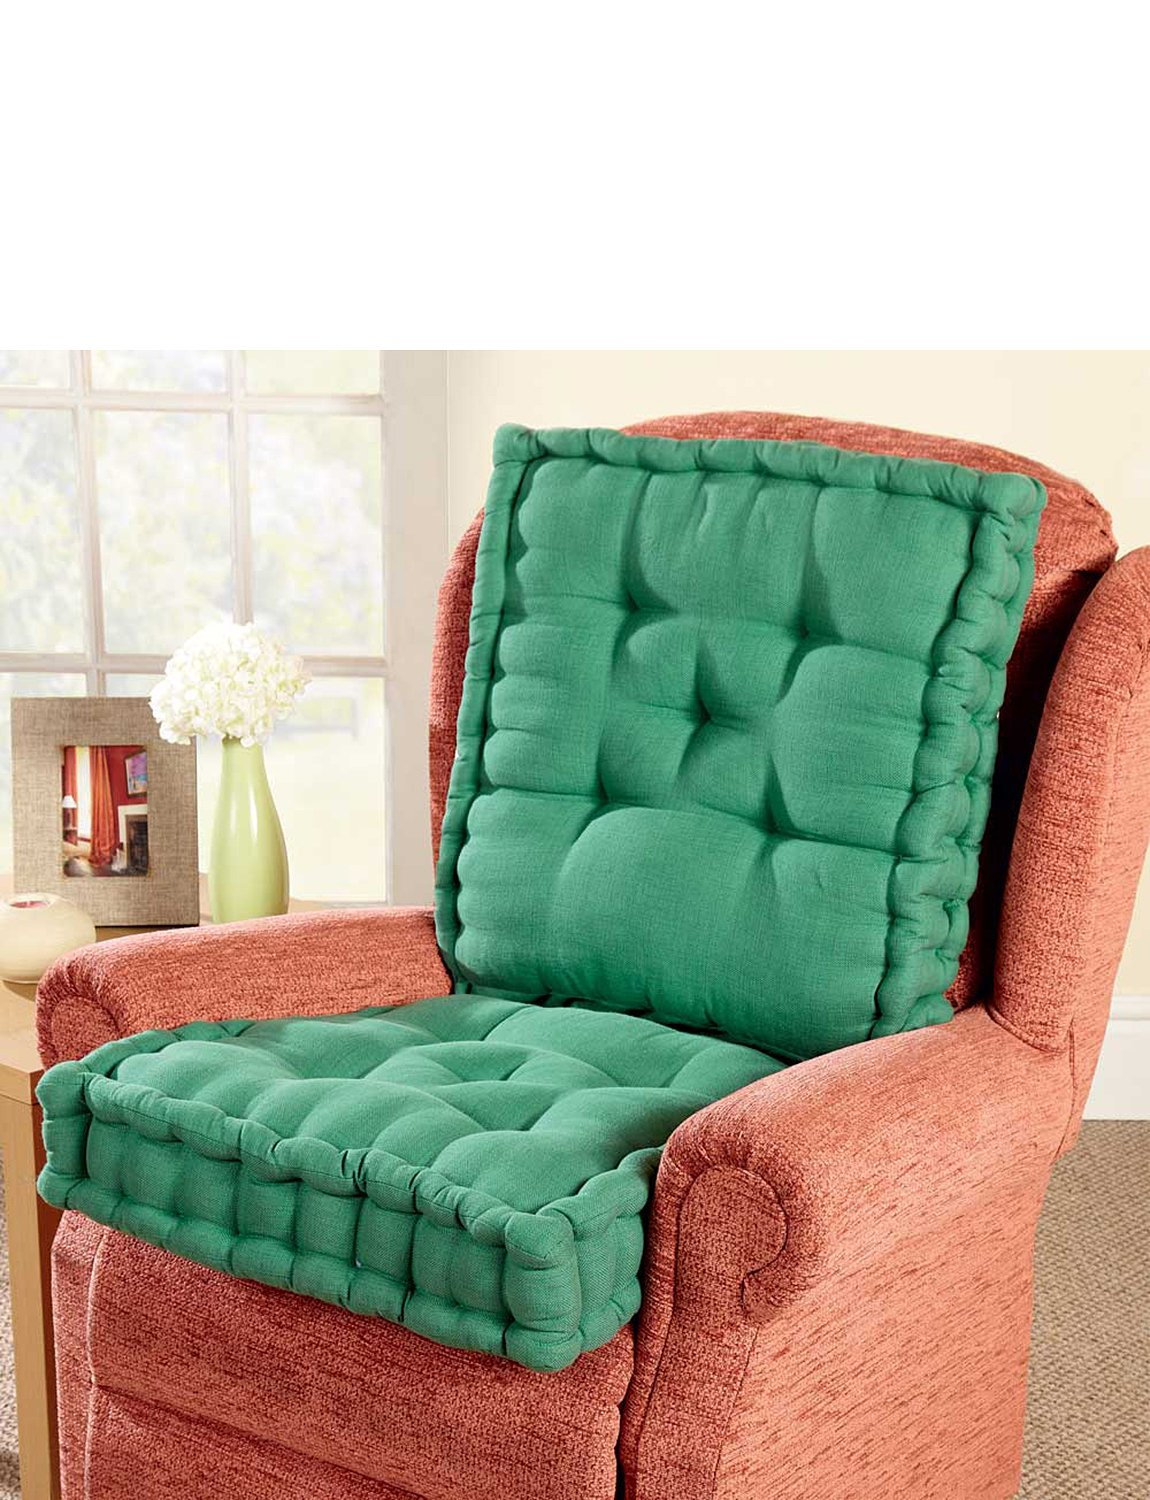 Luxury Back And Seat Booster Cushion Green One Size Chums